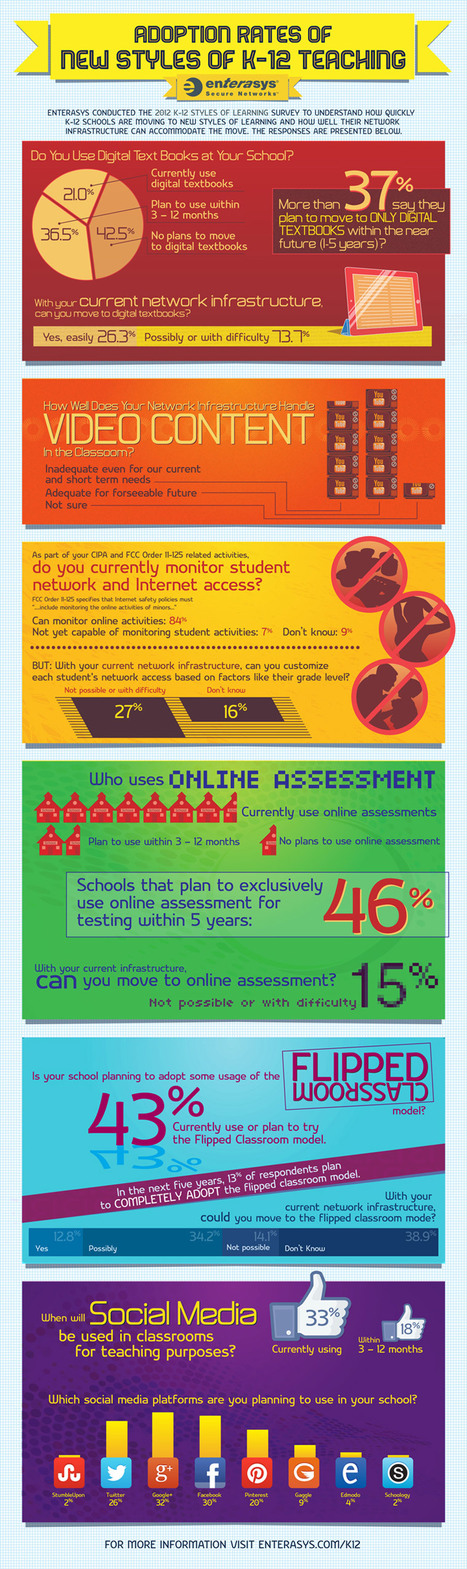 6 Hot Trends in Educational Technology [#Infographic] | E-Learning and Online Teaching | Scoop.it